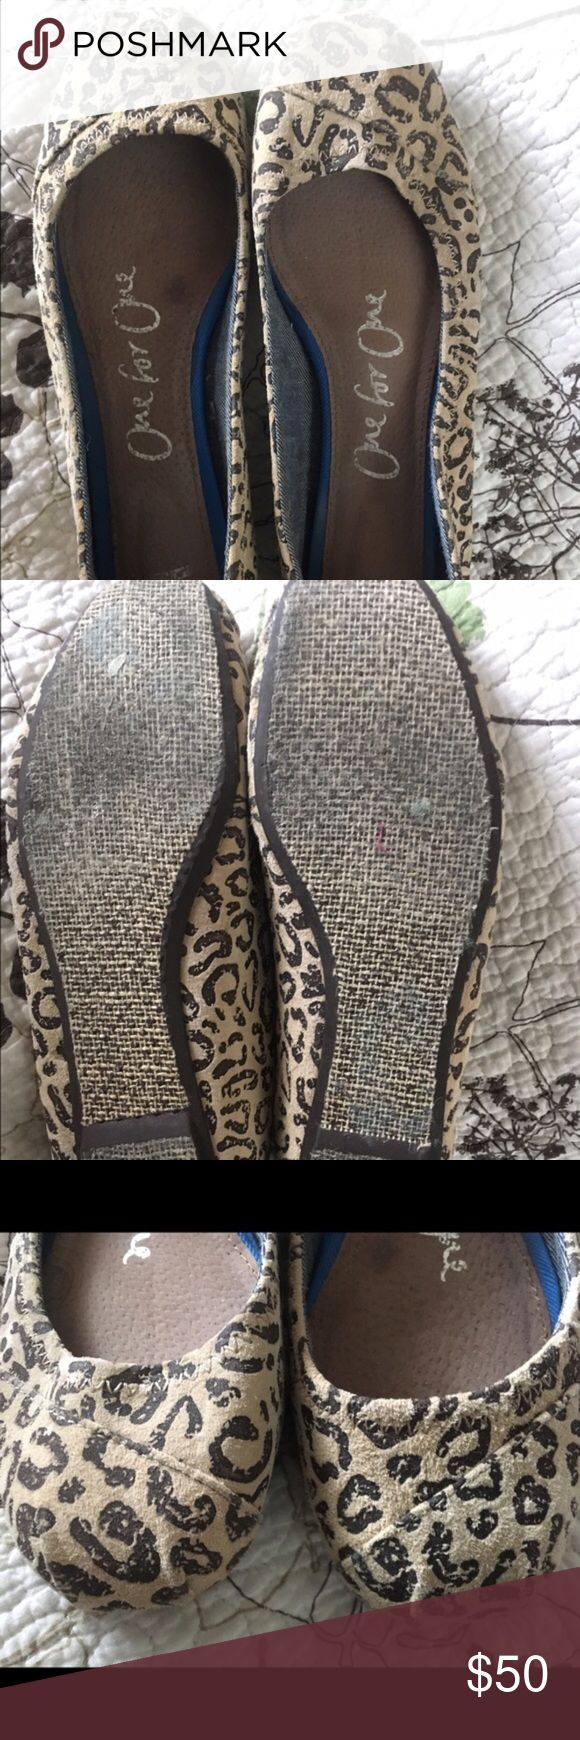 DISCONTINUED Leopard Toms Flats Bought off here but they're way big on me! Super sad because these are so cute and comfy! Open to offers! TOMS Shoes Flats & Loafers